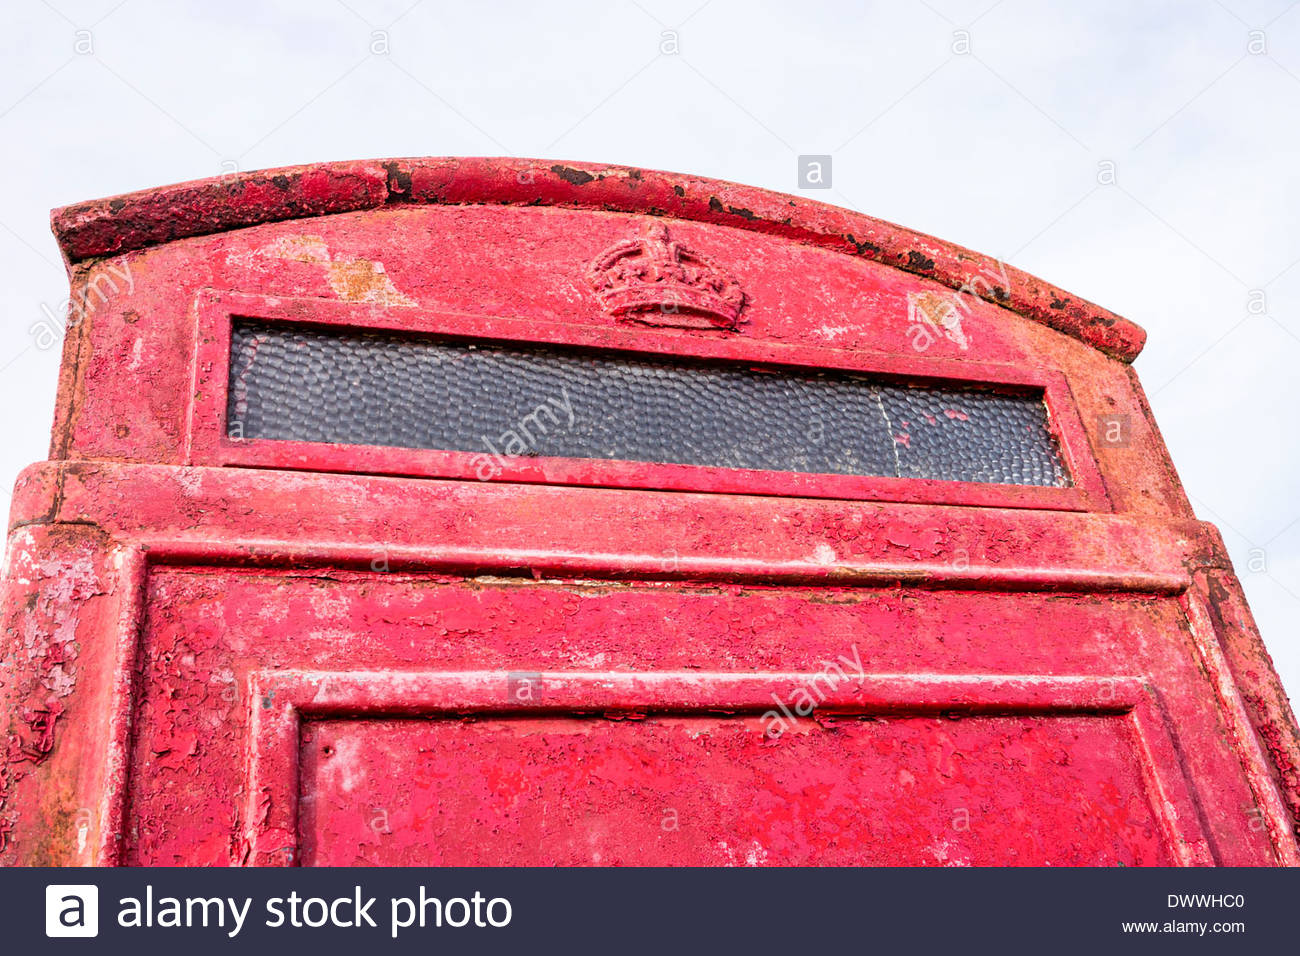 Old and weathered red telephone kiosk - Stock Image